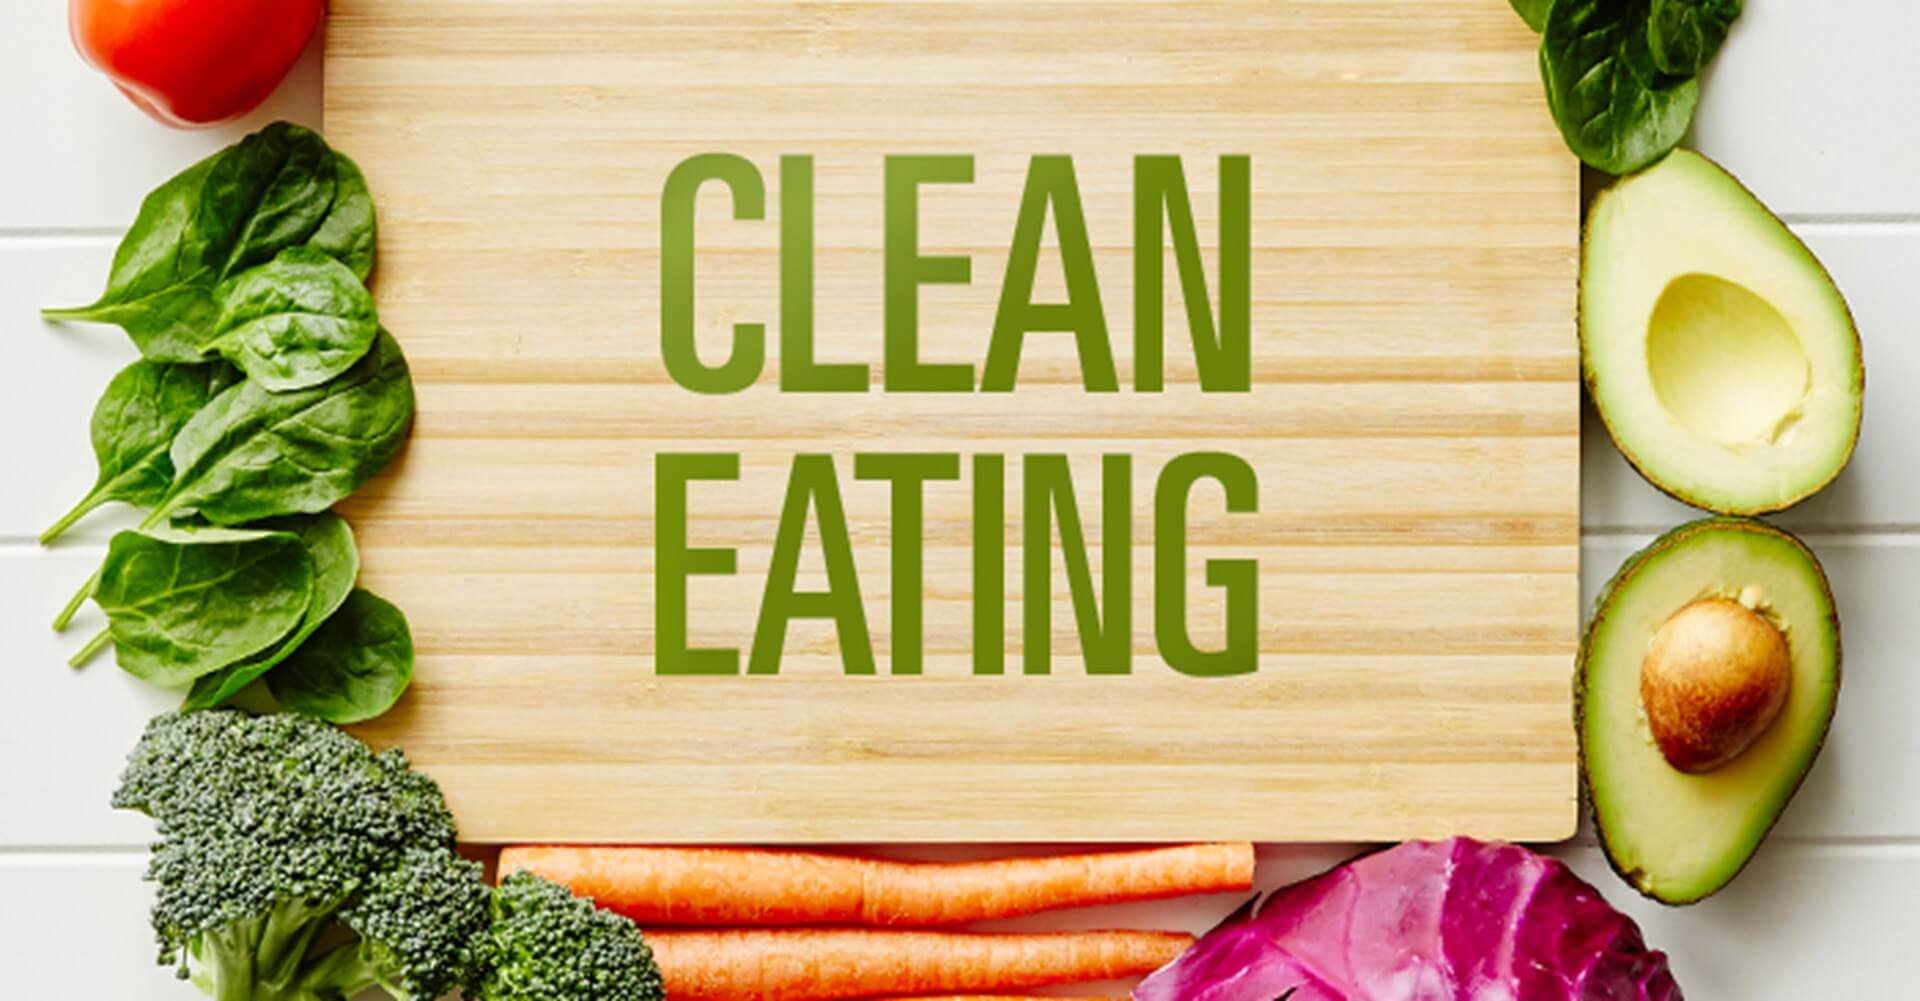 clean eating on a wooden board with vegetable